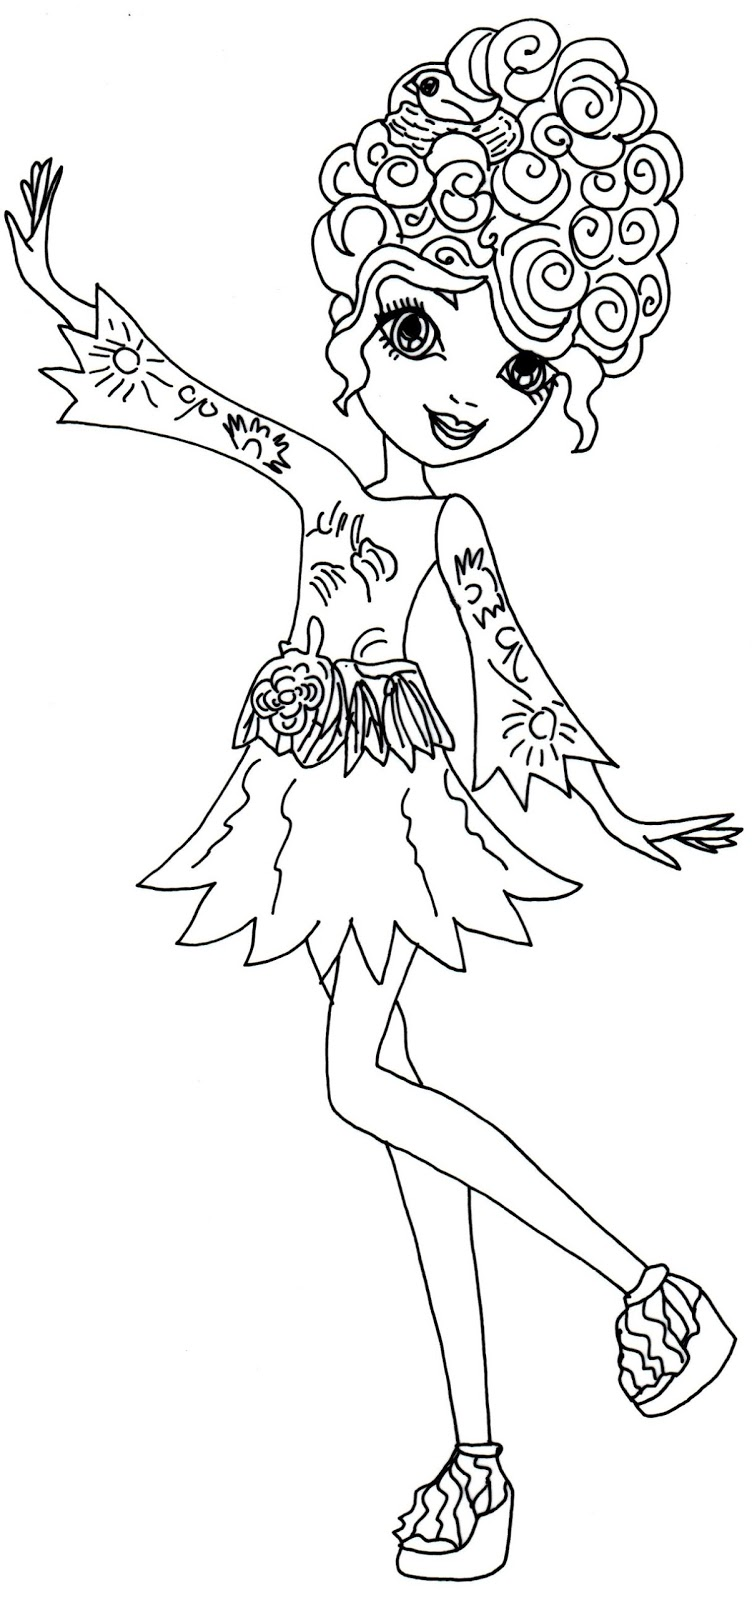 hd wallpapers ever after high dragon games coloring pages wds